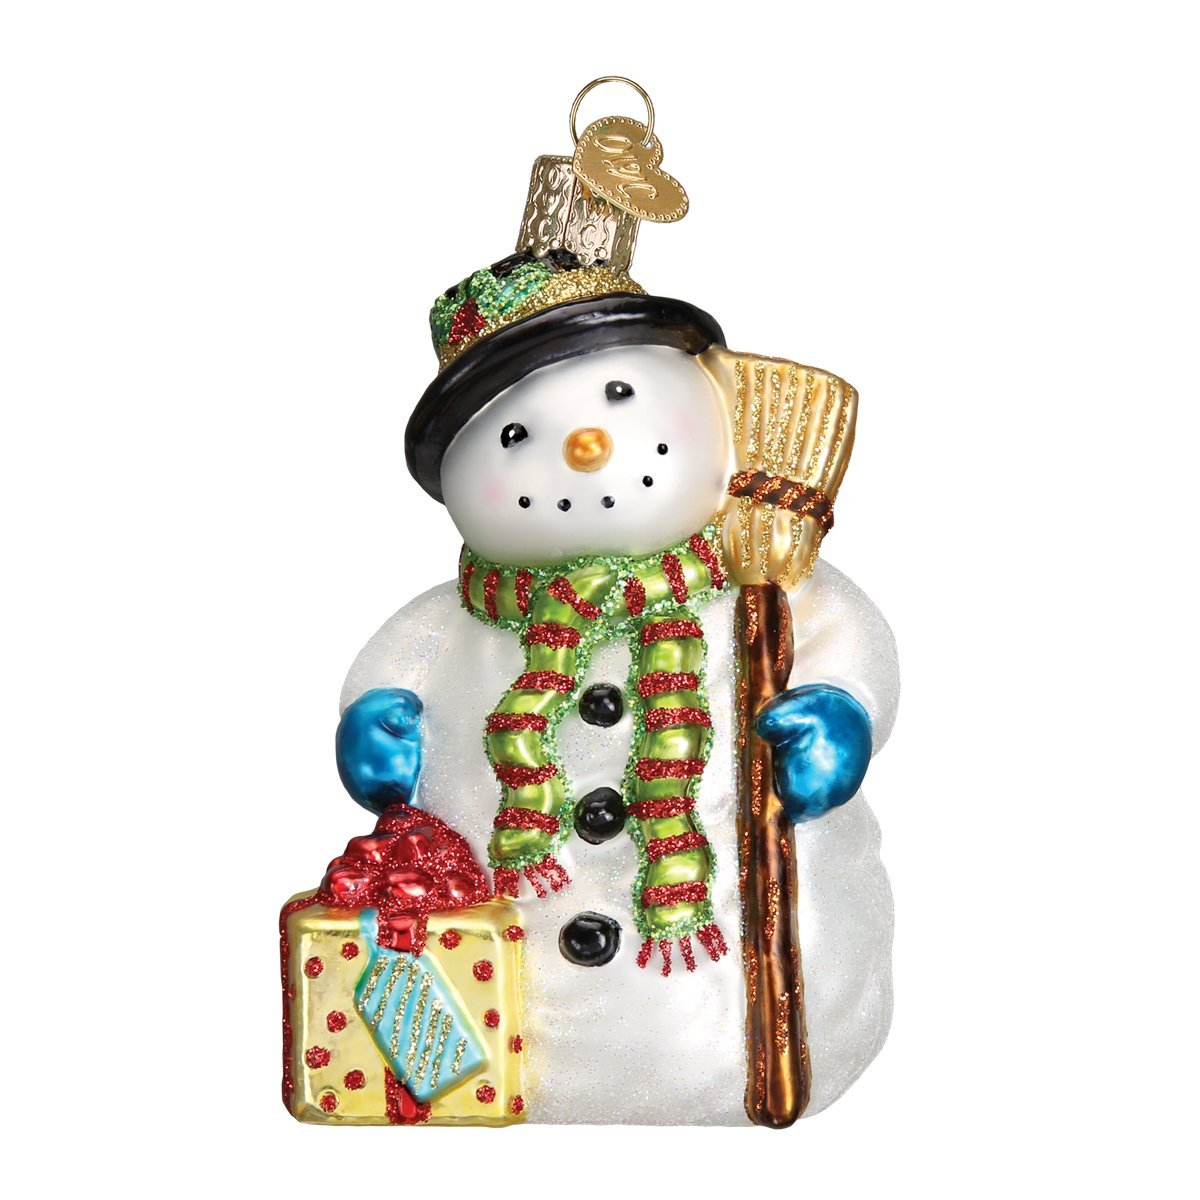 Old World Christmas Ornaments: Gleeful Snowman Glass Blown Ornaments for Christmas Tree 24164